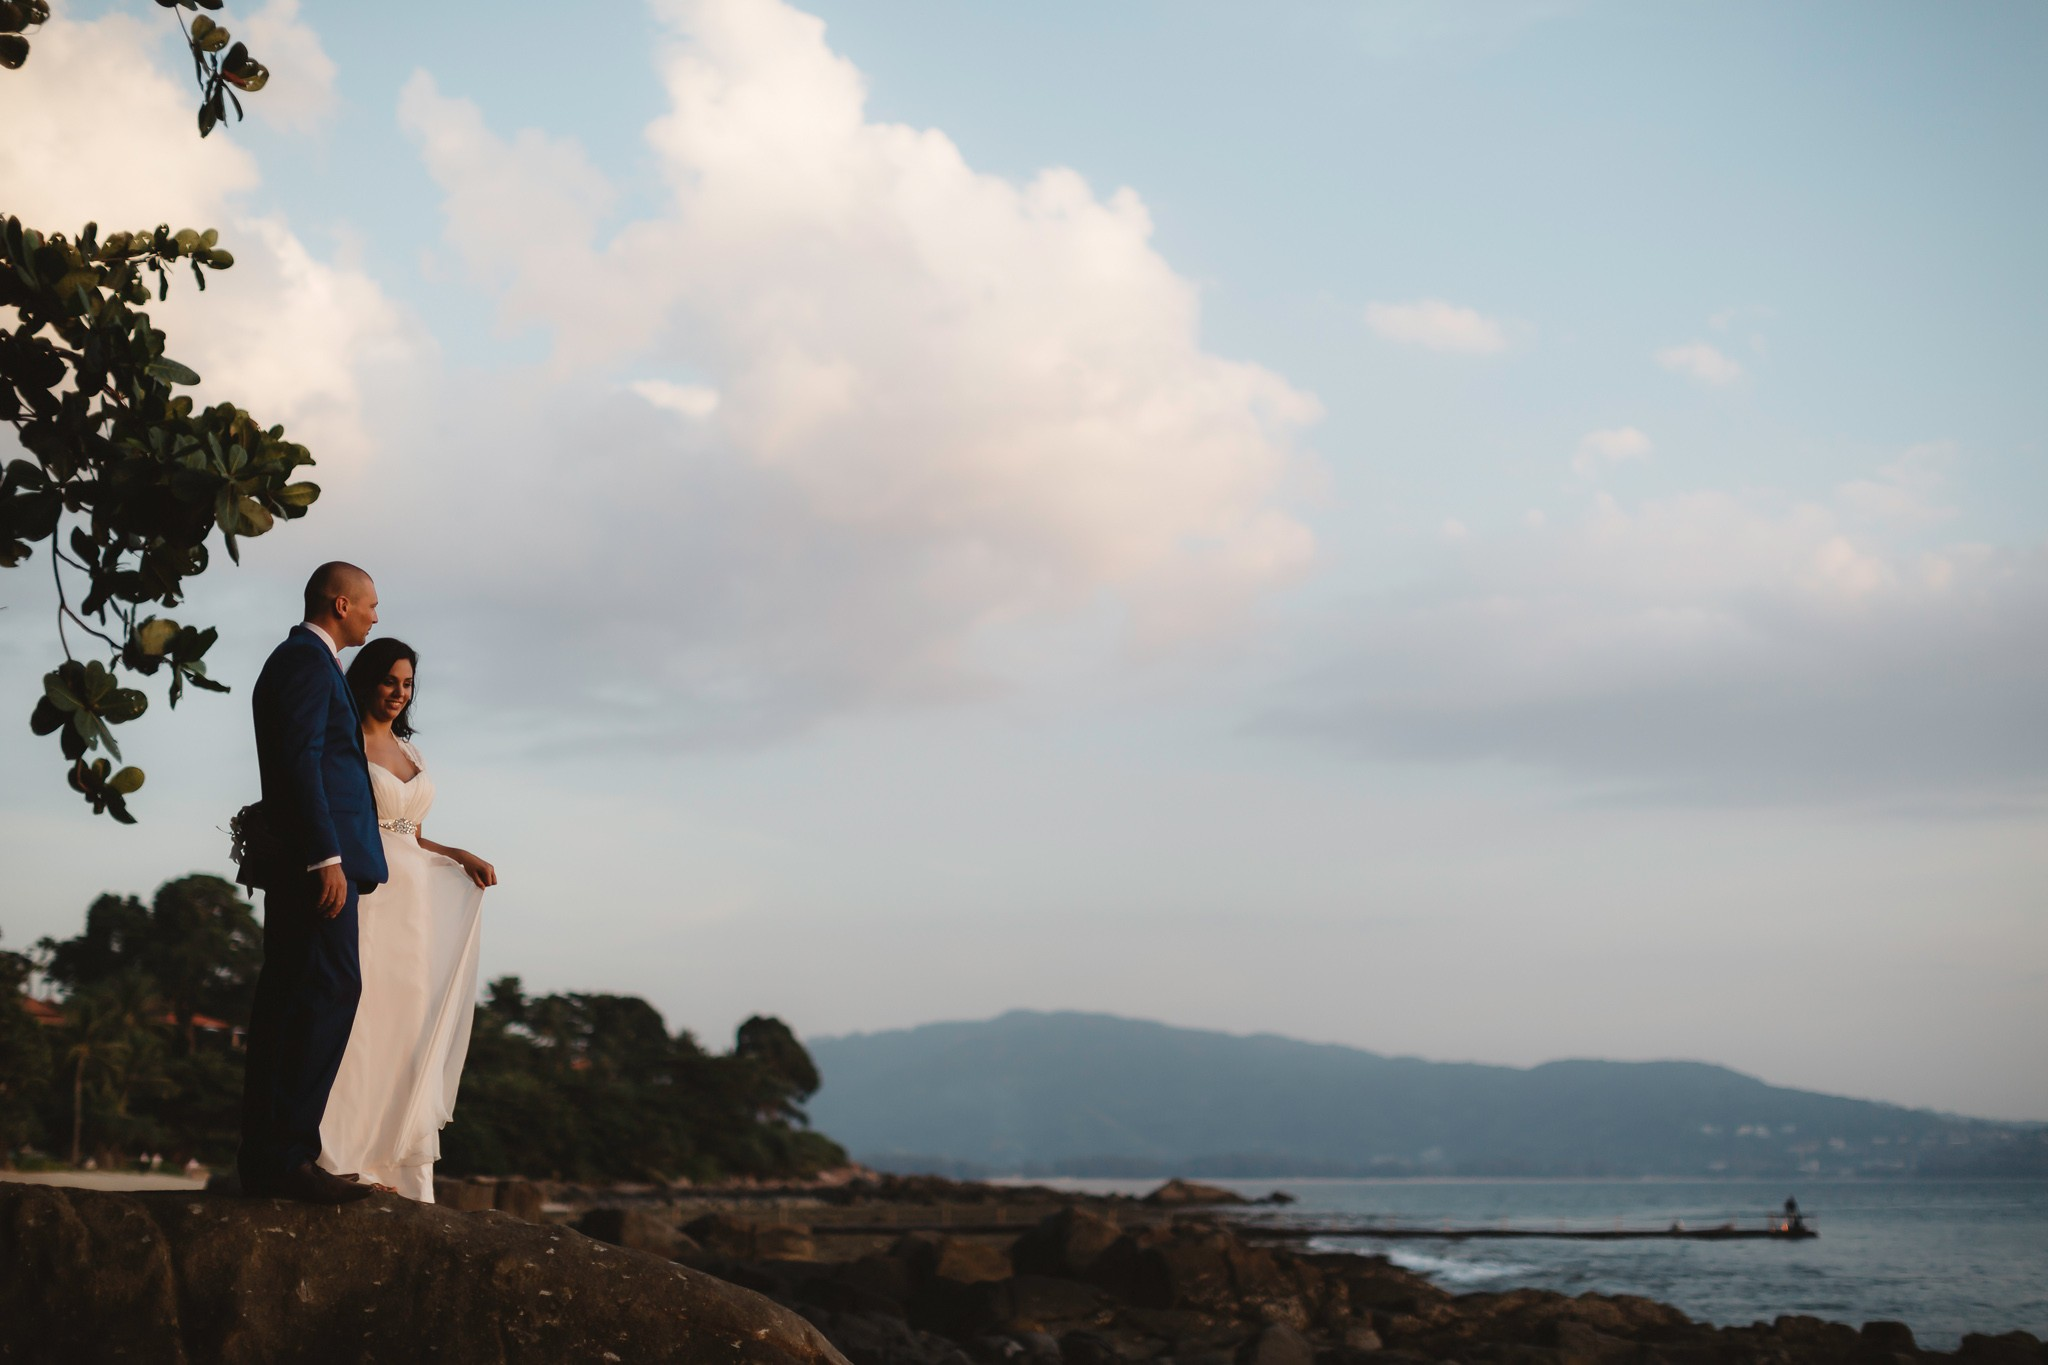 thailand weddings packages villa beach resort wedding thailand